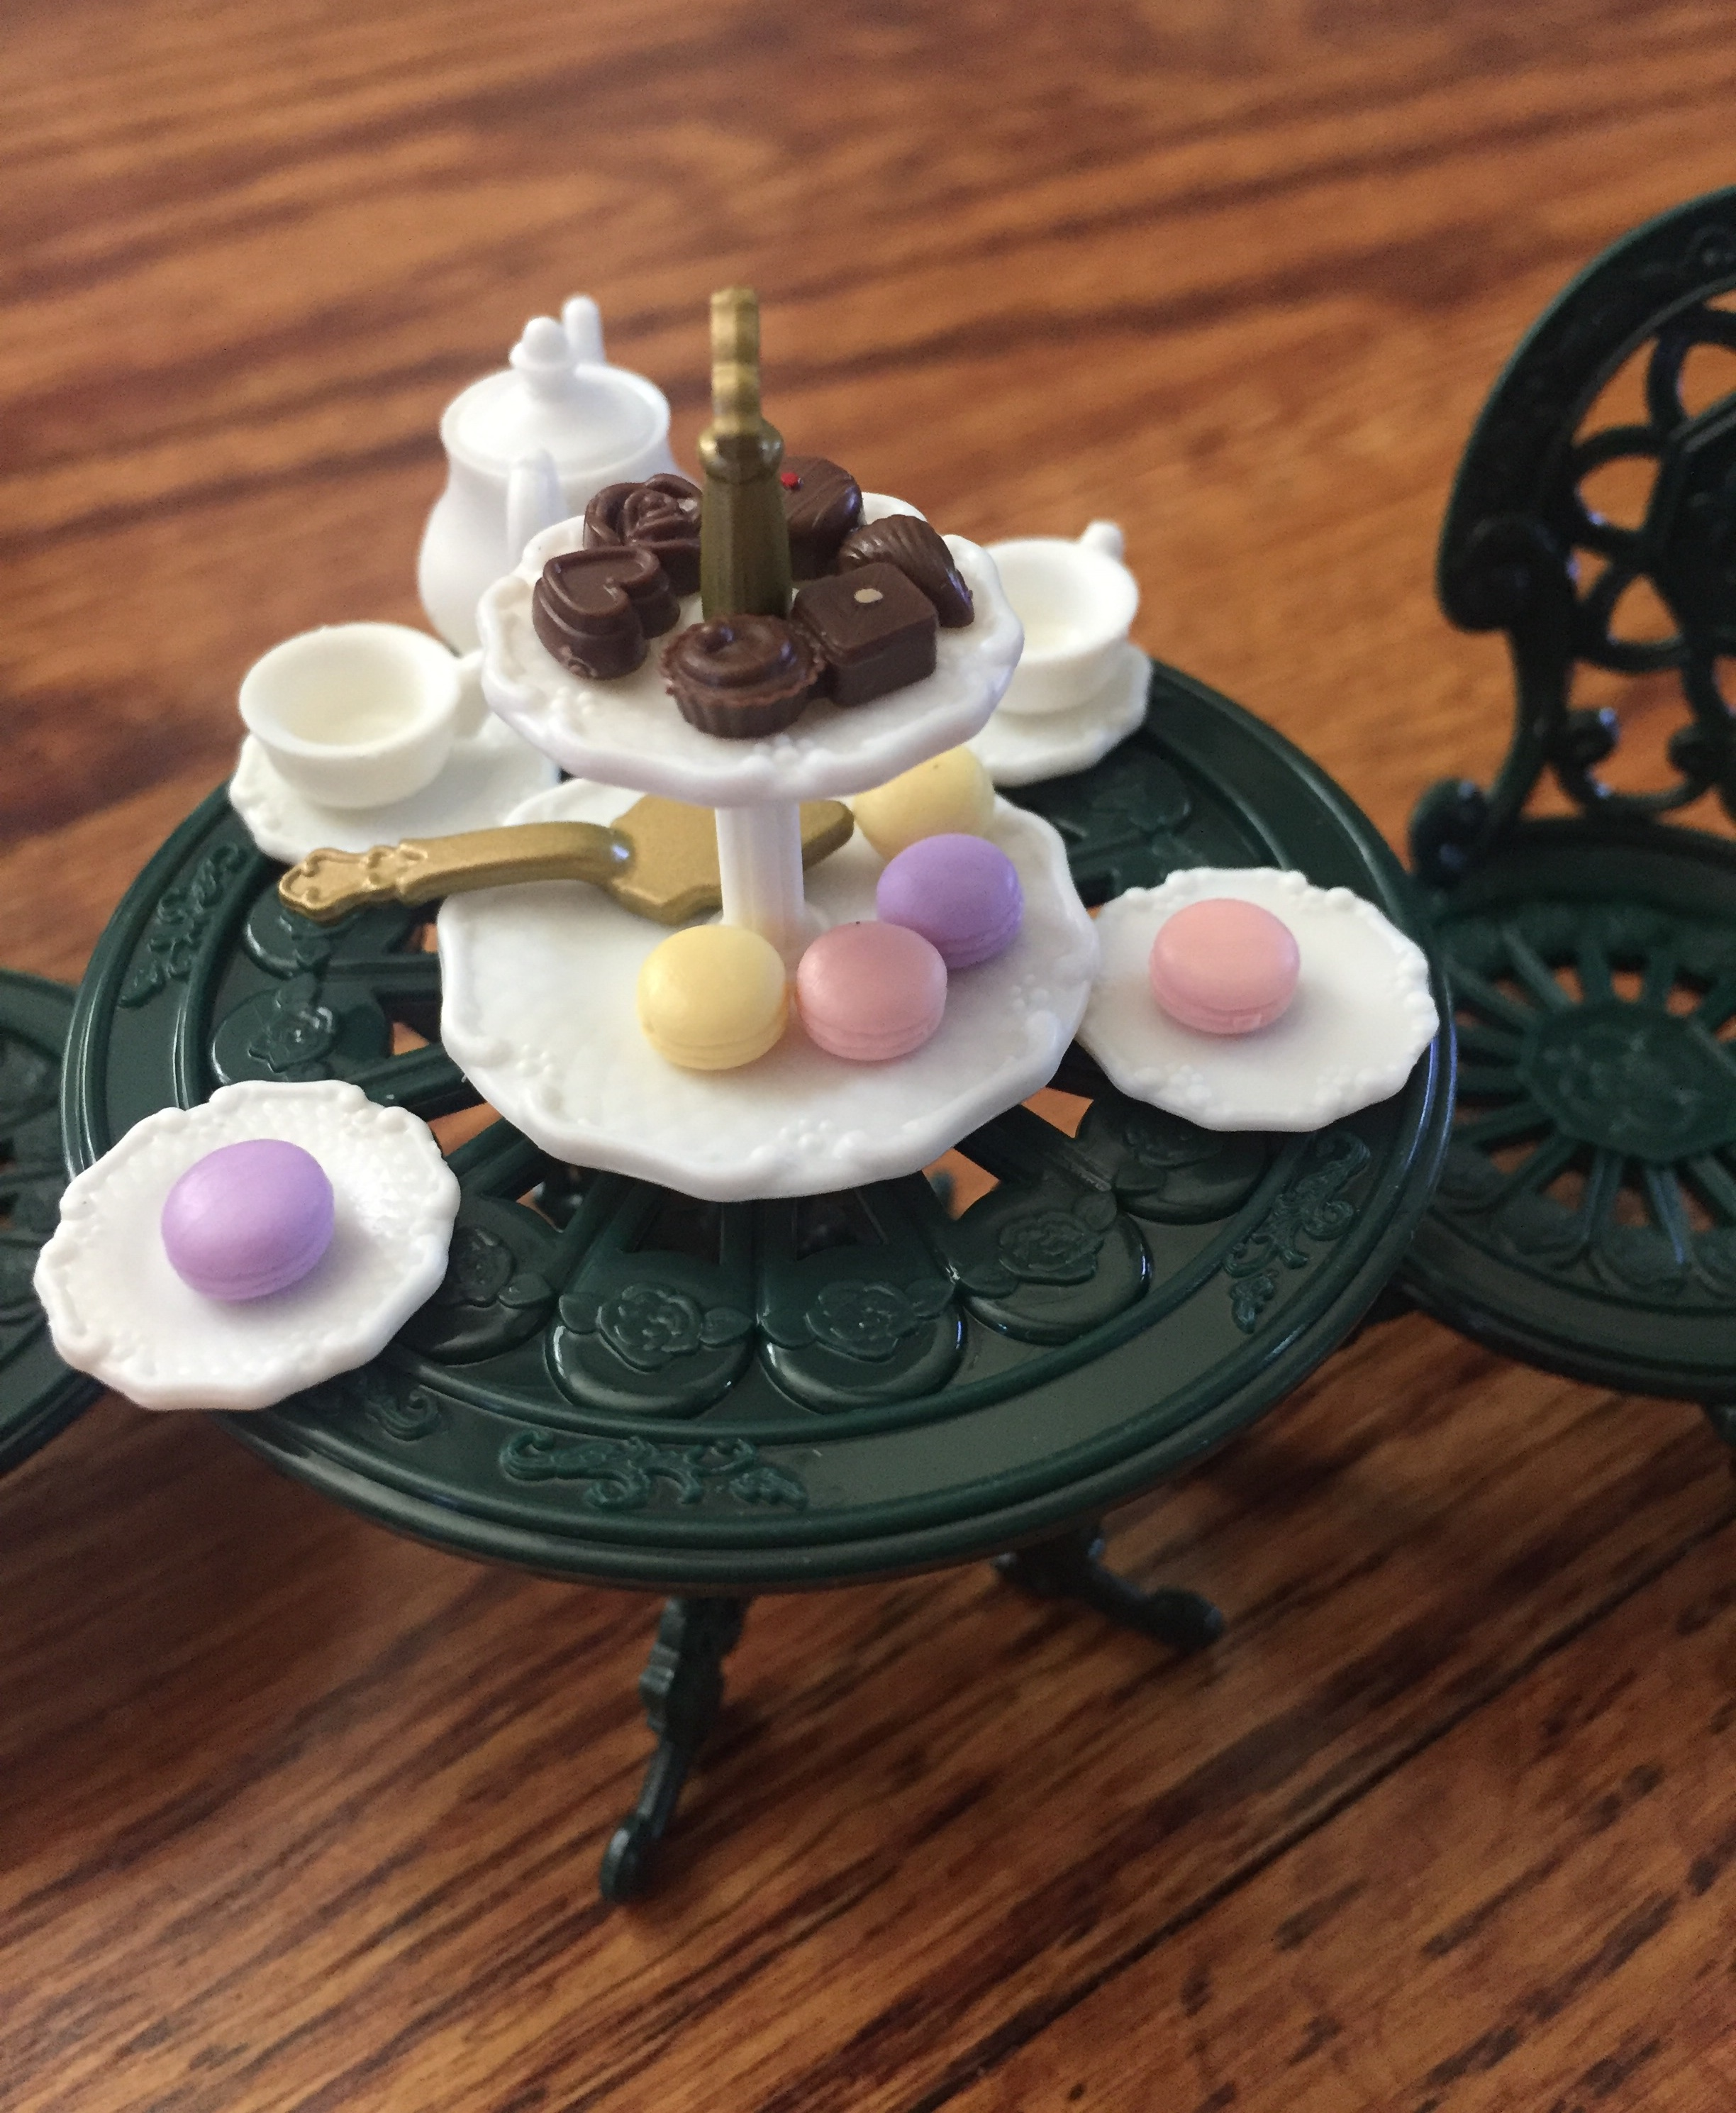 Calico Critters Town Tea and Treats tea party accessory set